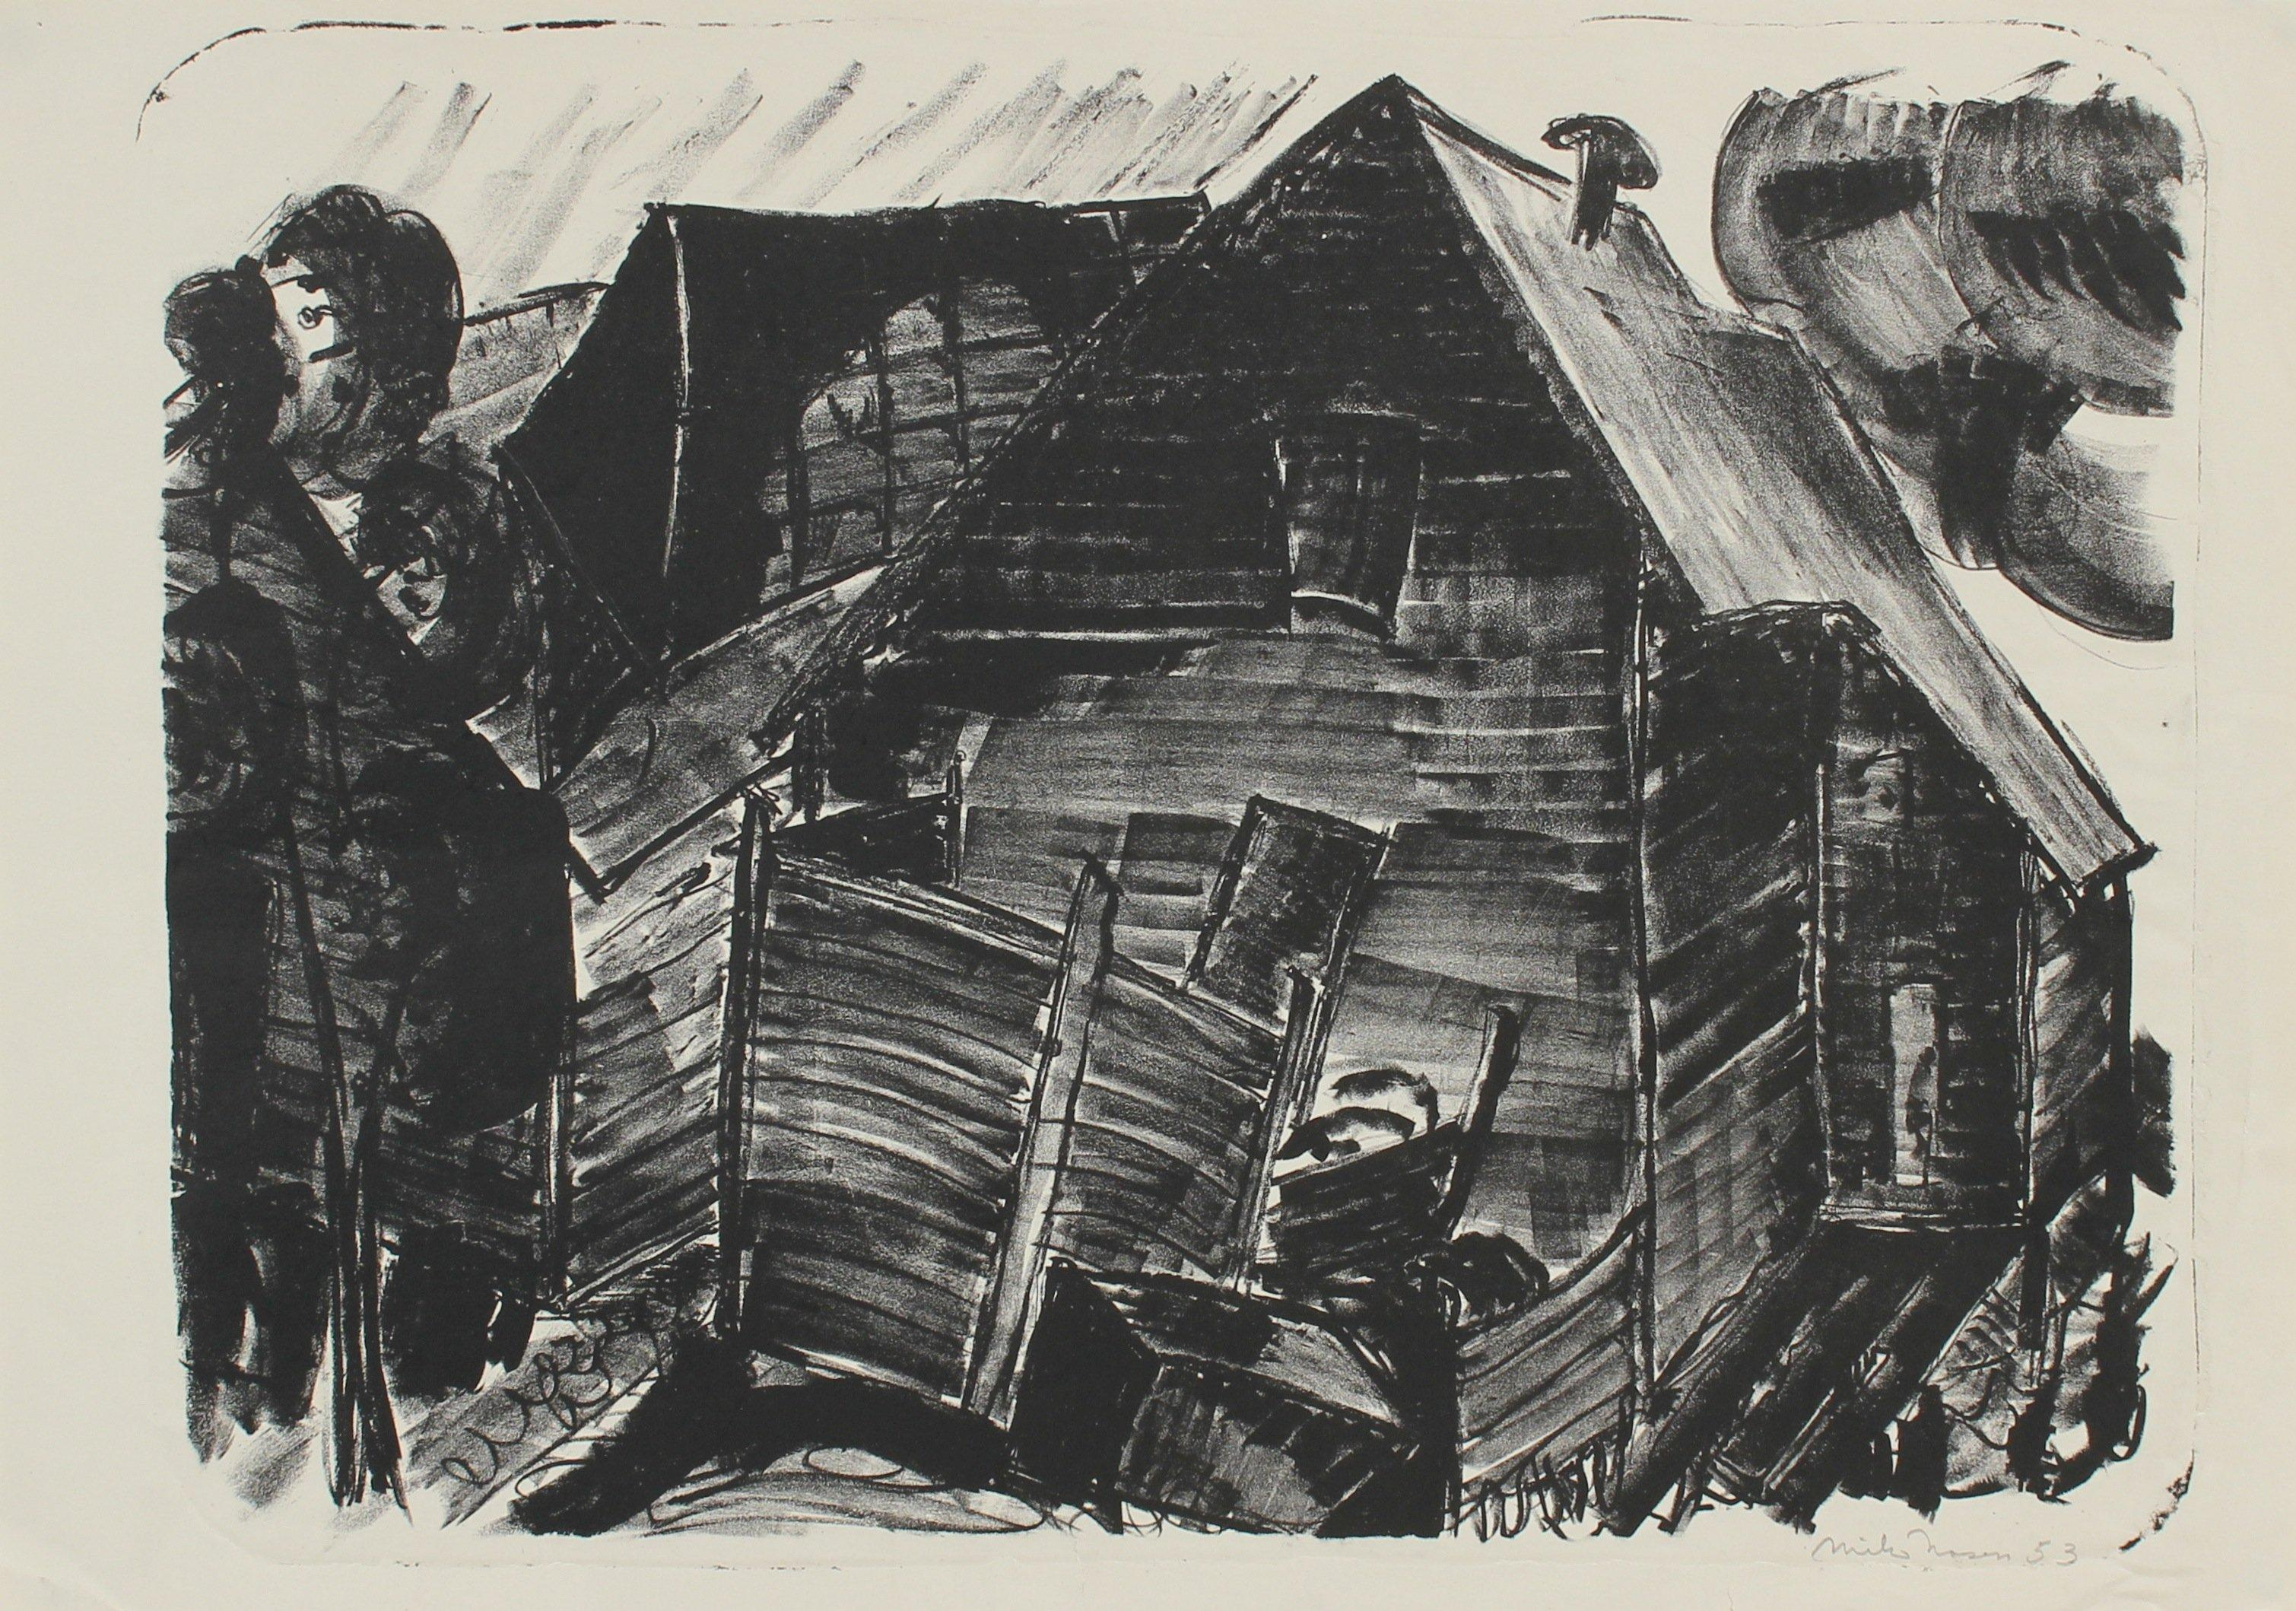 Monochrome Graphic Abstracted Barn 1953 Lithograph